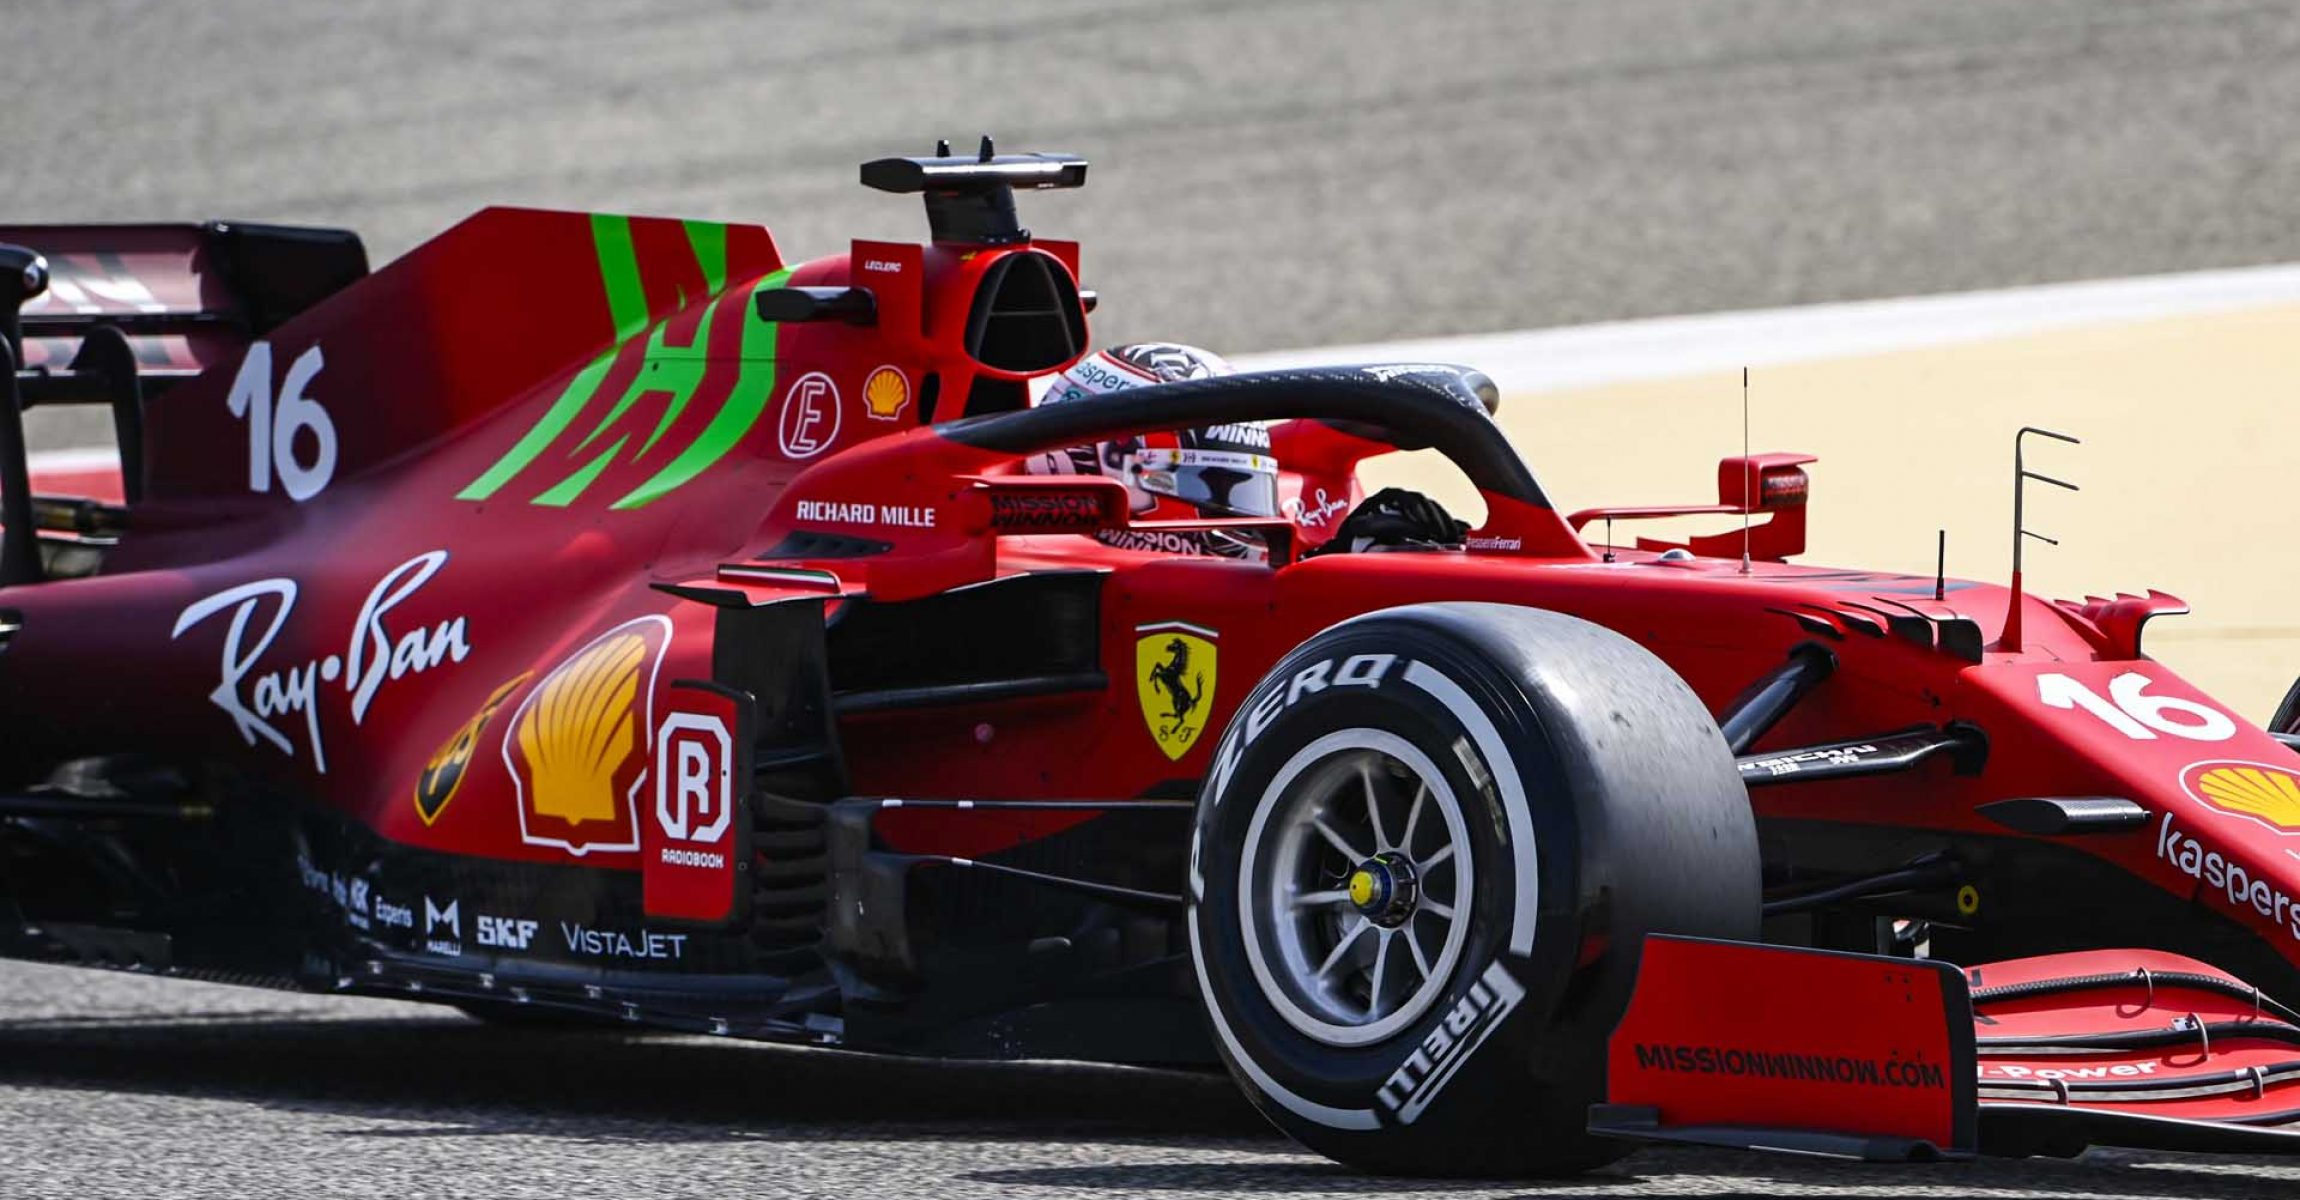 BAHRAIN INTERNATIONAL CIRCUIT, BAHRAIN - MARCH 12: Charles Leclerc, Ferrari SF21 during the Bahrain March testing at Bahrain International Circuit on Friday March 12, 2021 in Sakhir, Bahrain. (Photo by Mark Sutton / LAT Images)